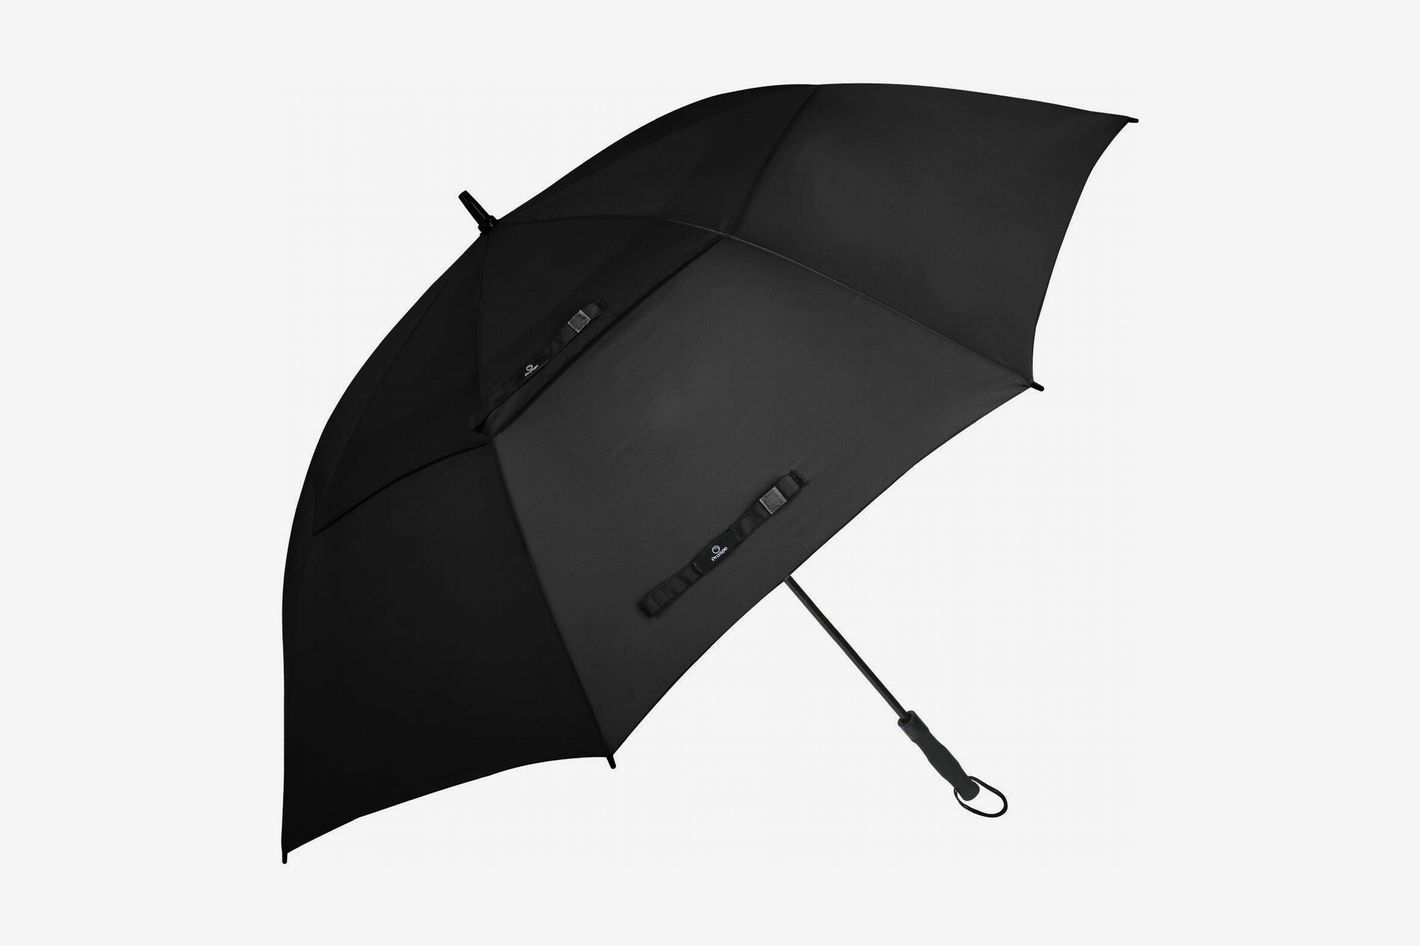 e56c502284bdb Prospo 62/68 Inch Oversized Auto-Open Golf Umbrella Double Canopy Vented Large  Umbrella at Amazon. Buy